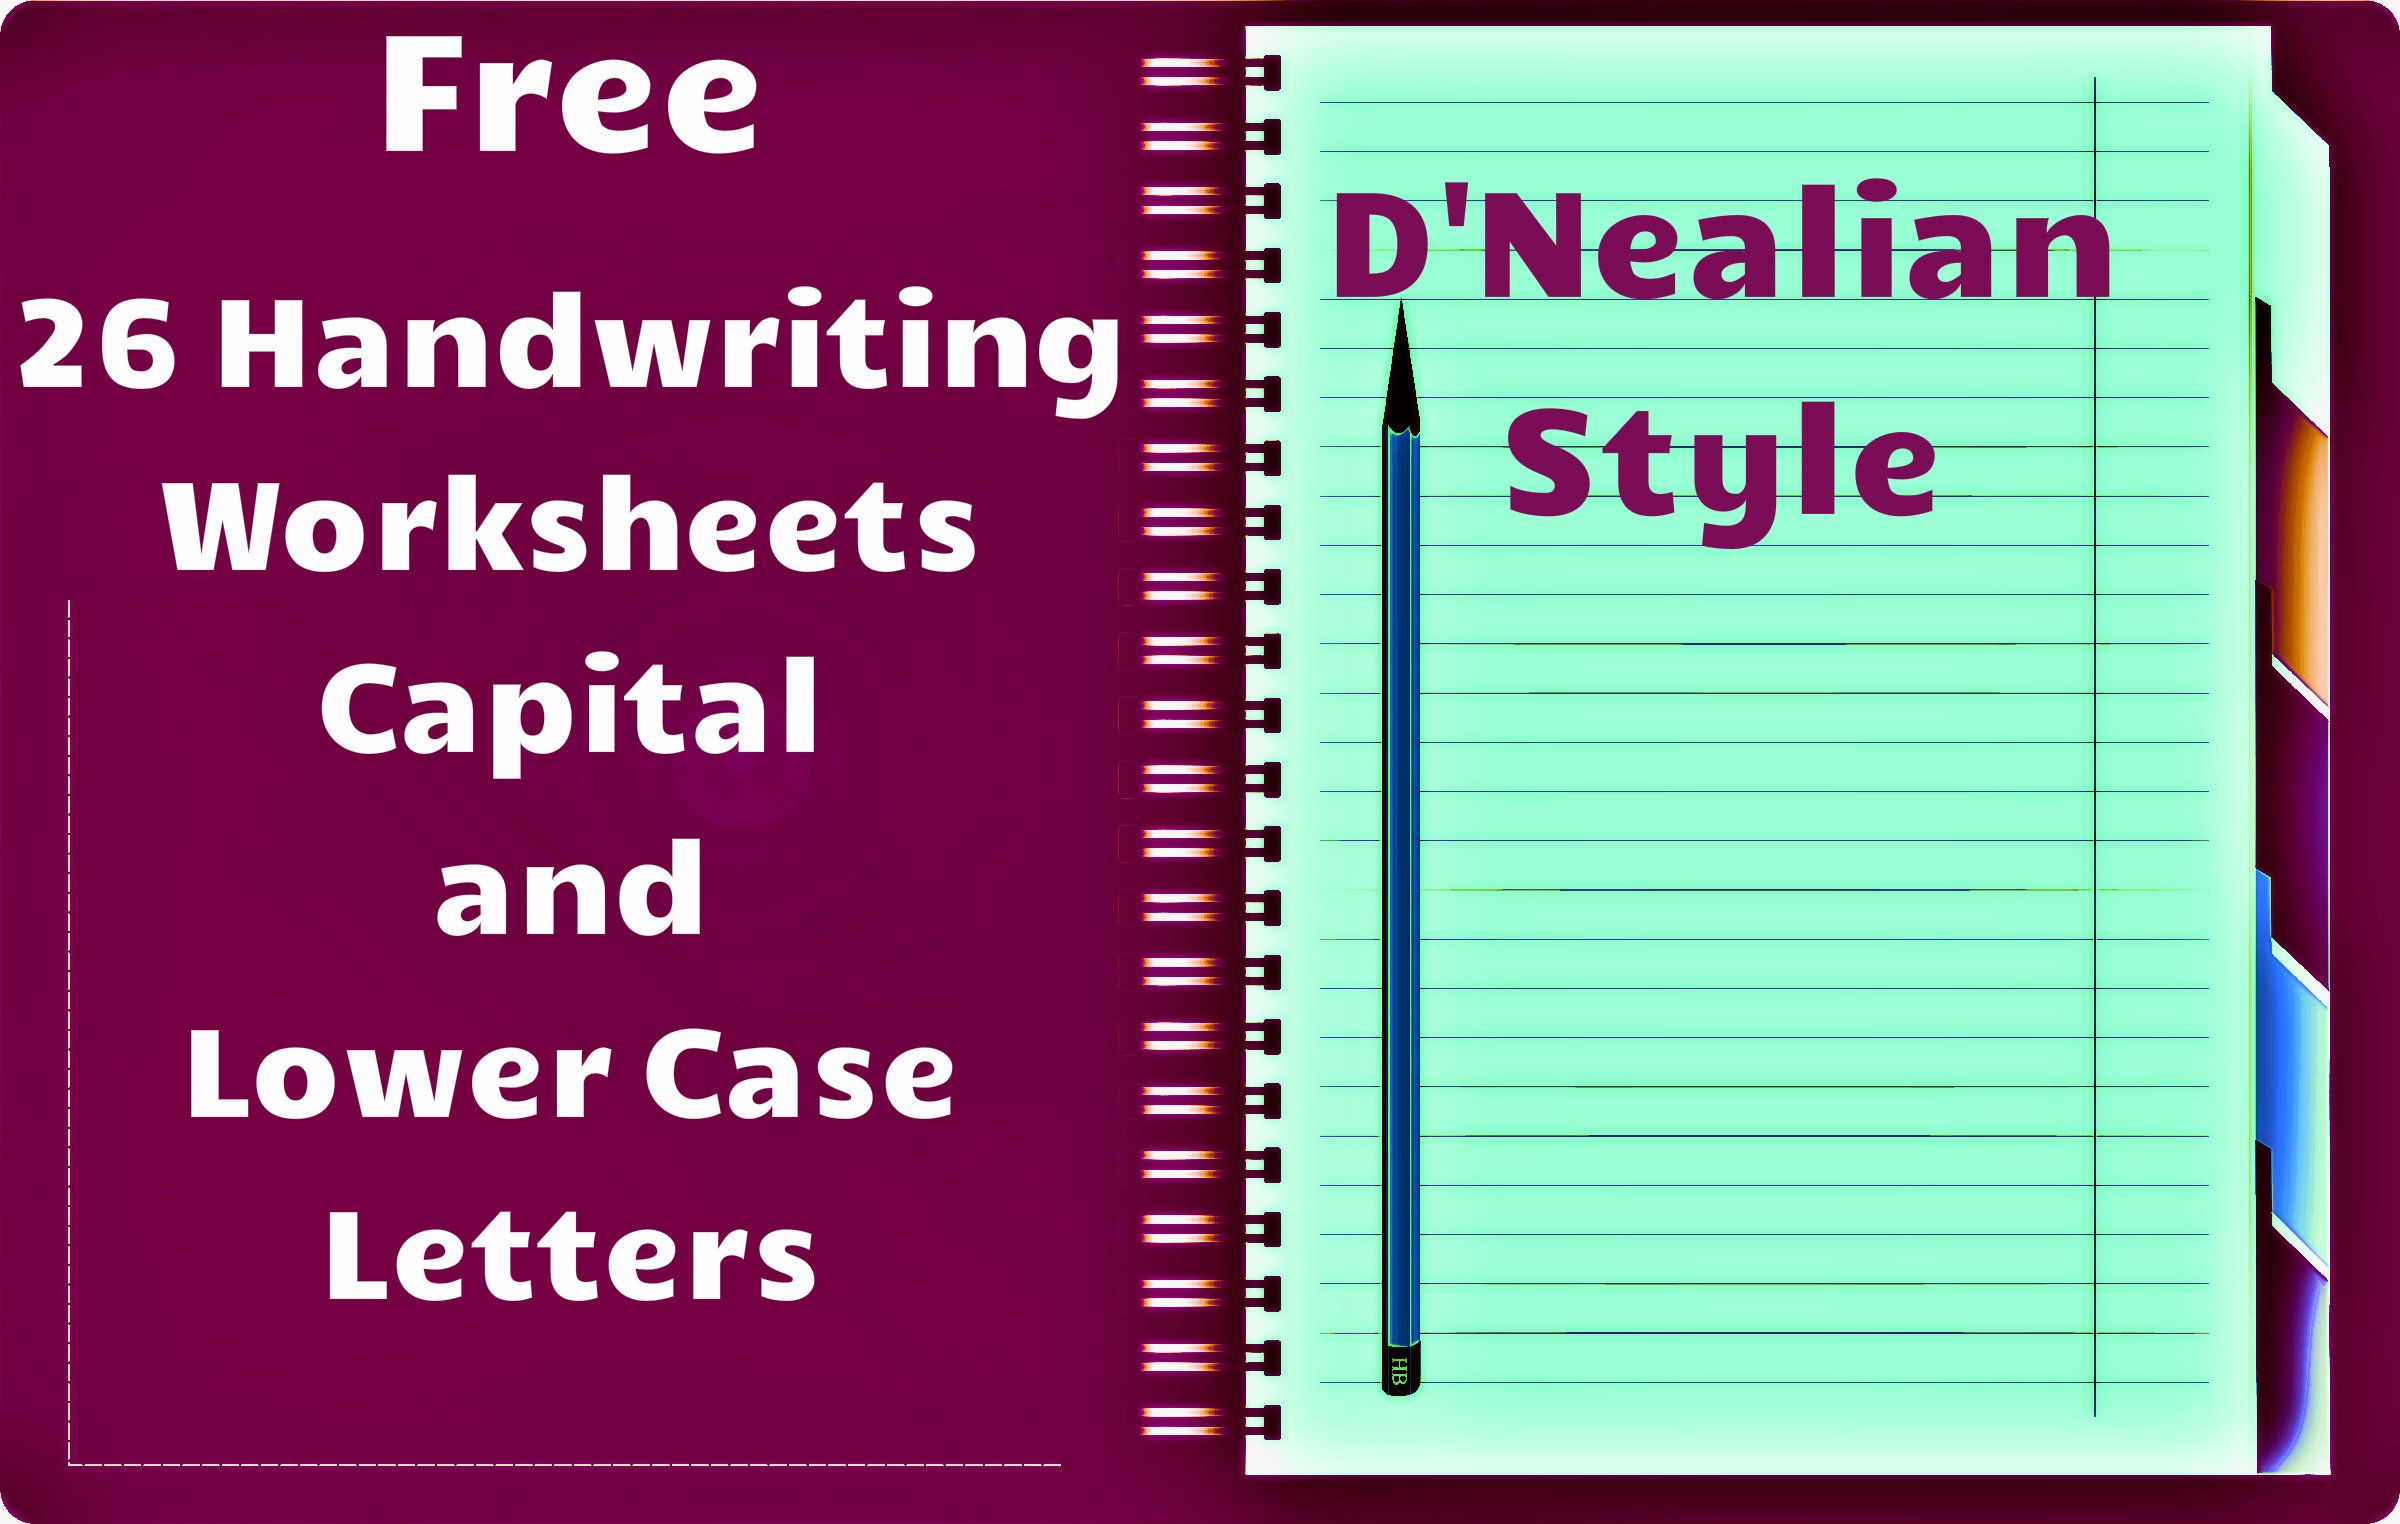 Free Handwriting Worksheets Includes Worksheets For All Capital As Well As Lower Case Letters